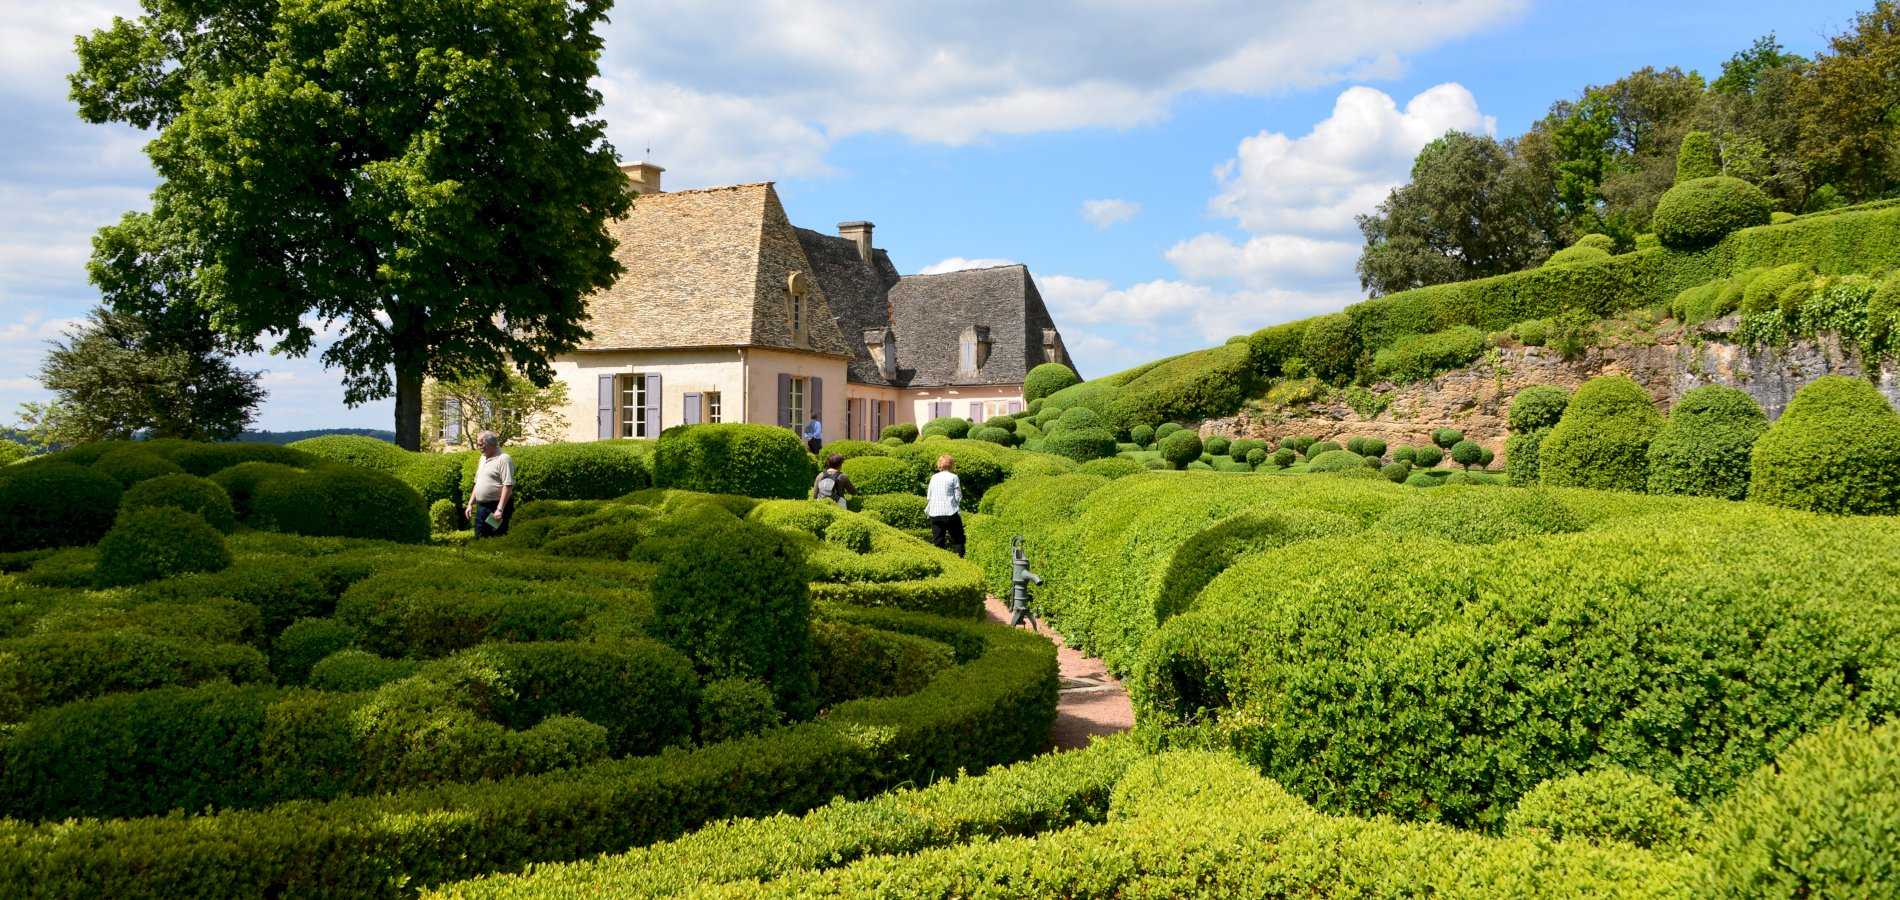 Ophorus Tours - Castles & Gardens of the Dordogne Private Day Trip From Sarlat